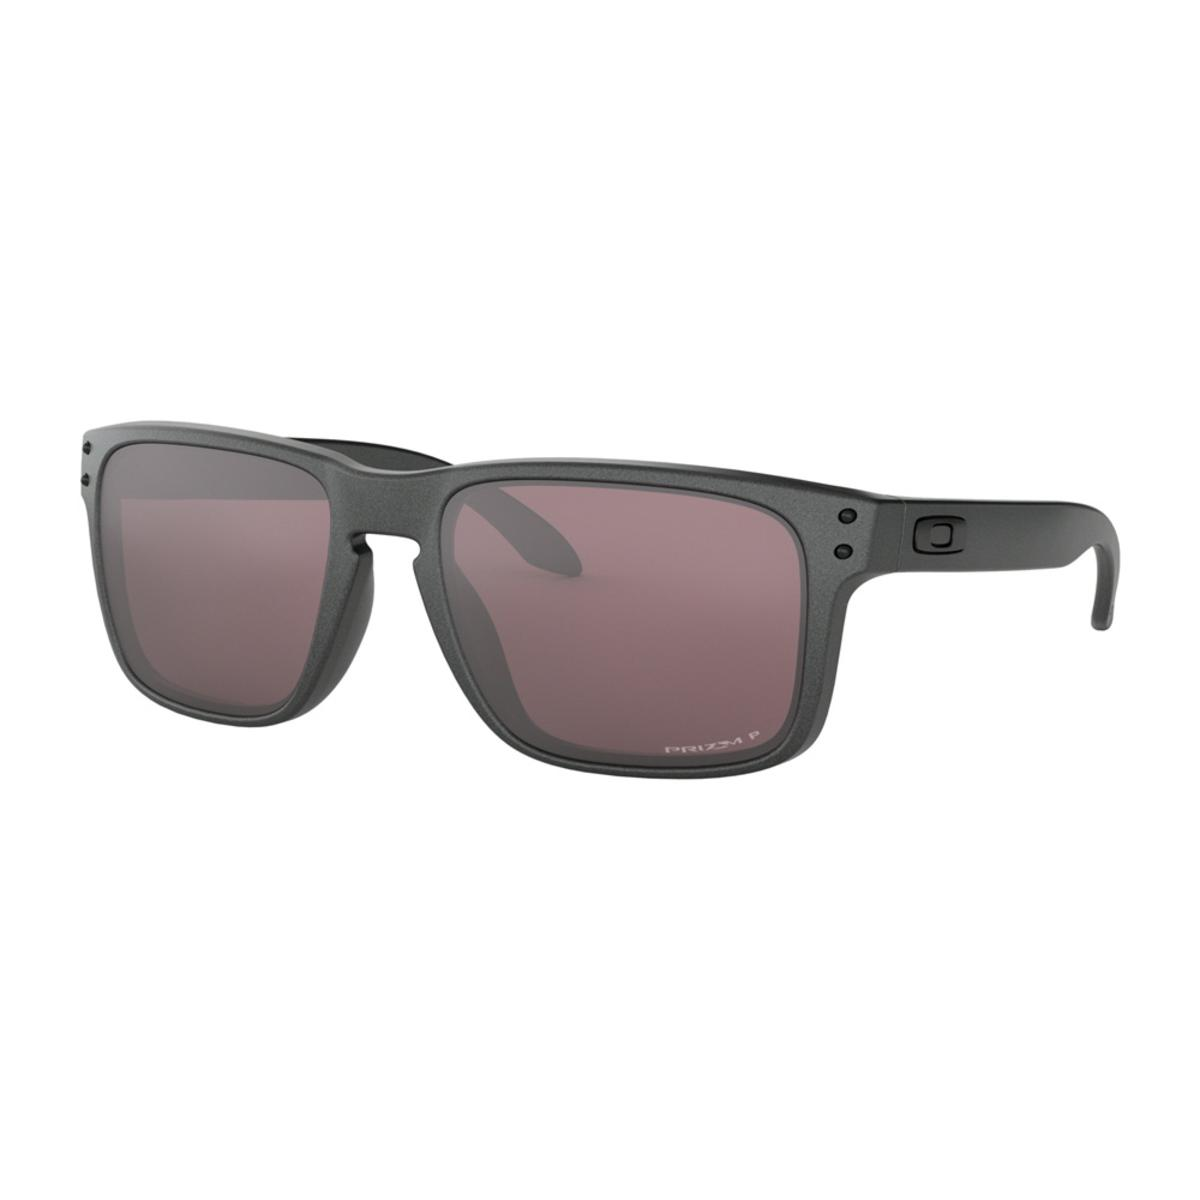 2971f345bd Oakley Holbrook Steel Collection Sunglasses w Prizm Daily Polarized - The  Warming Store